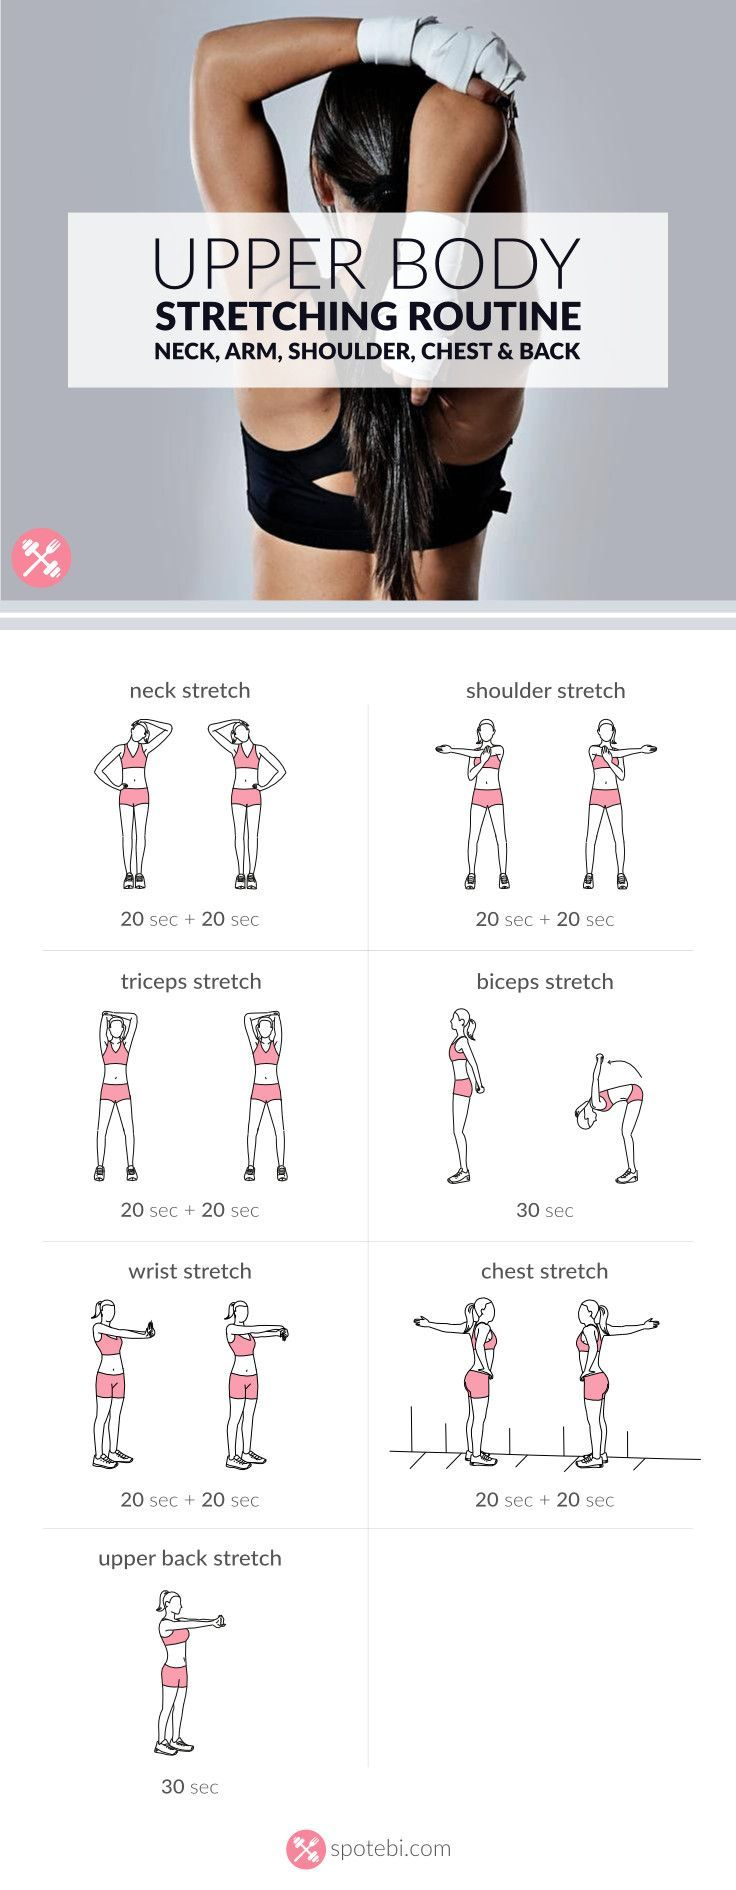 Stretch your neck, arm, shoulder, chest and back with these upper body stretching exercises. A set of stretches to relax the body and improve range of motion.